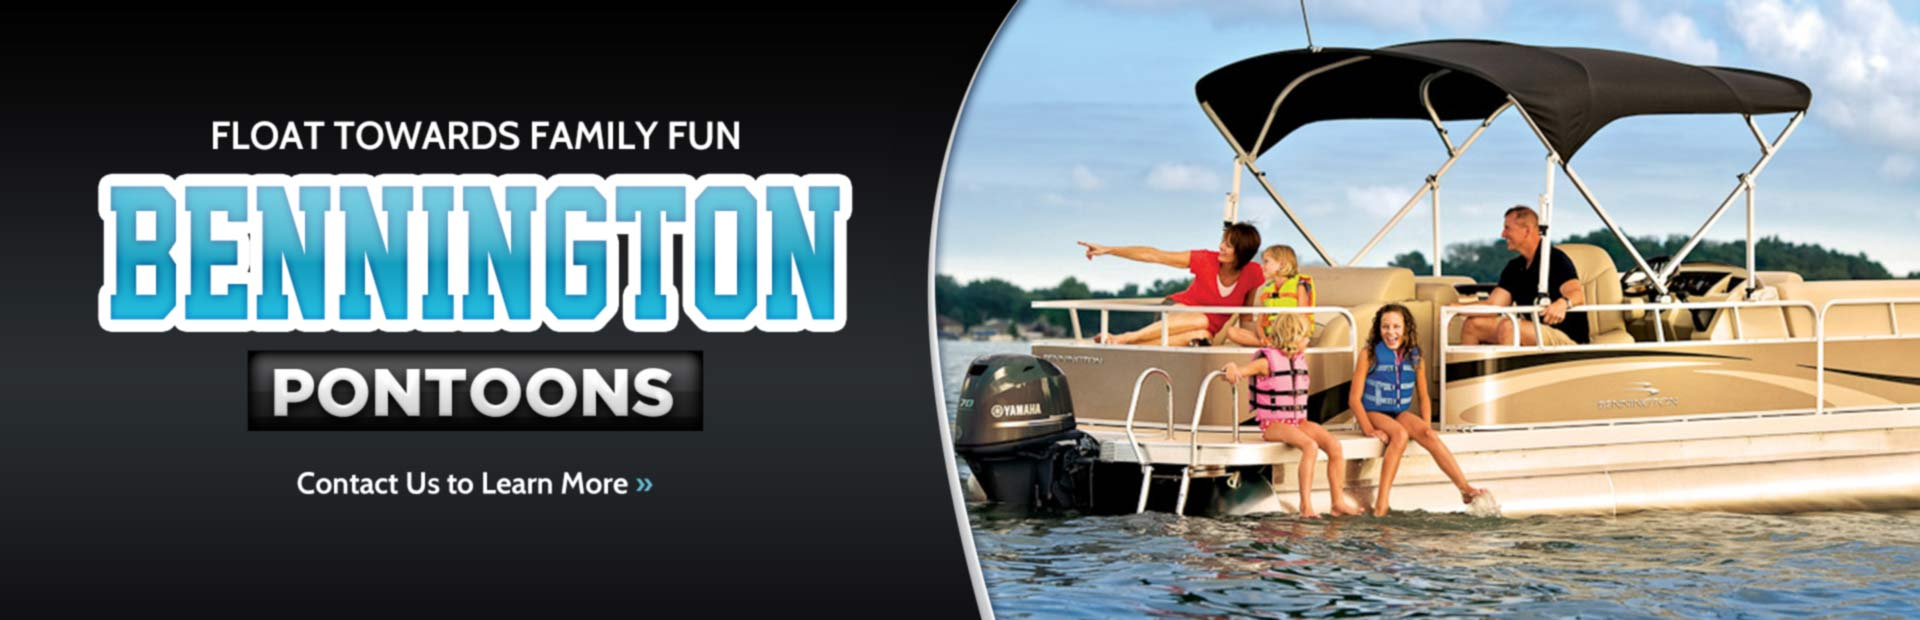 Click here to contact us about Bennington pontoons.